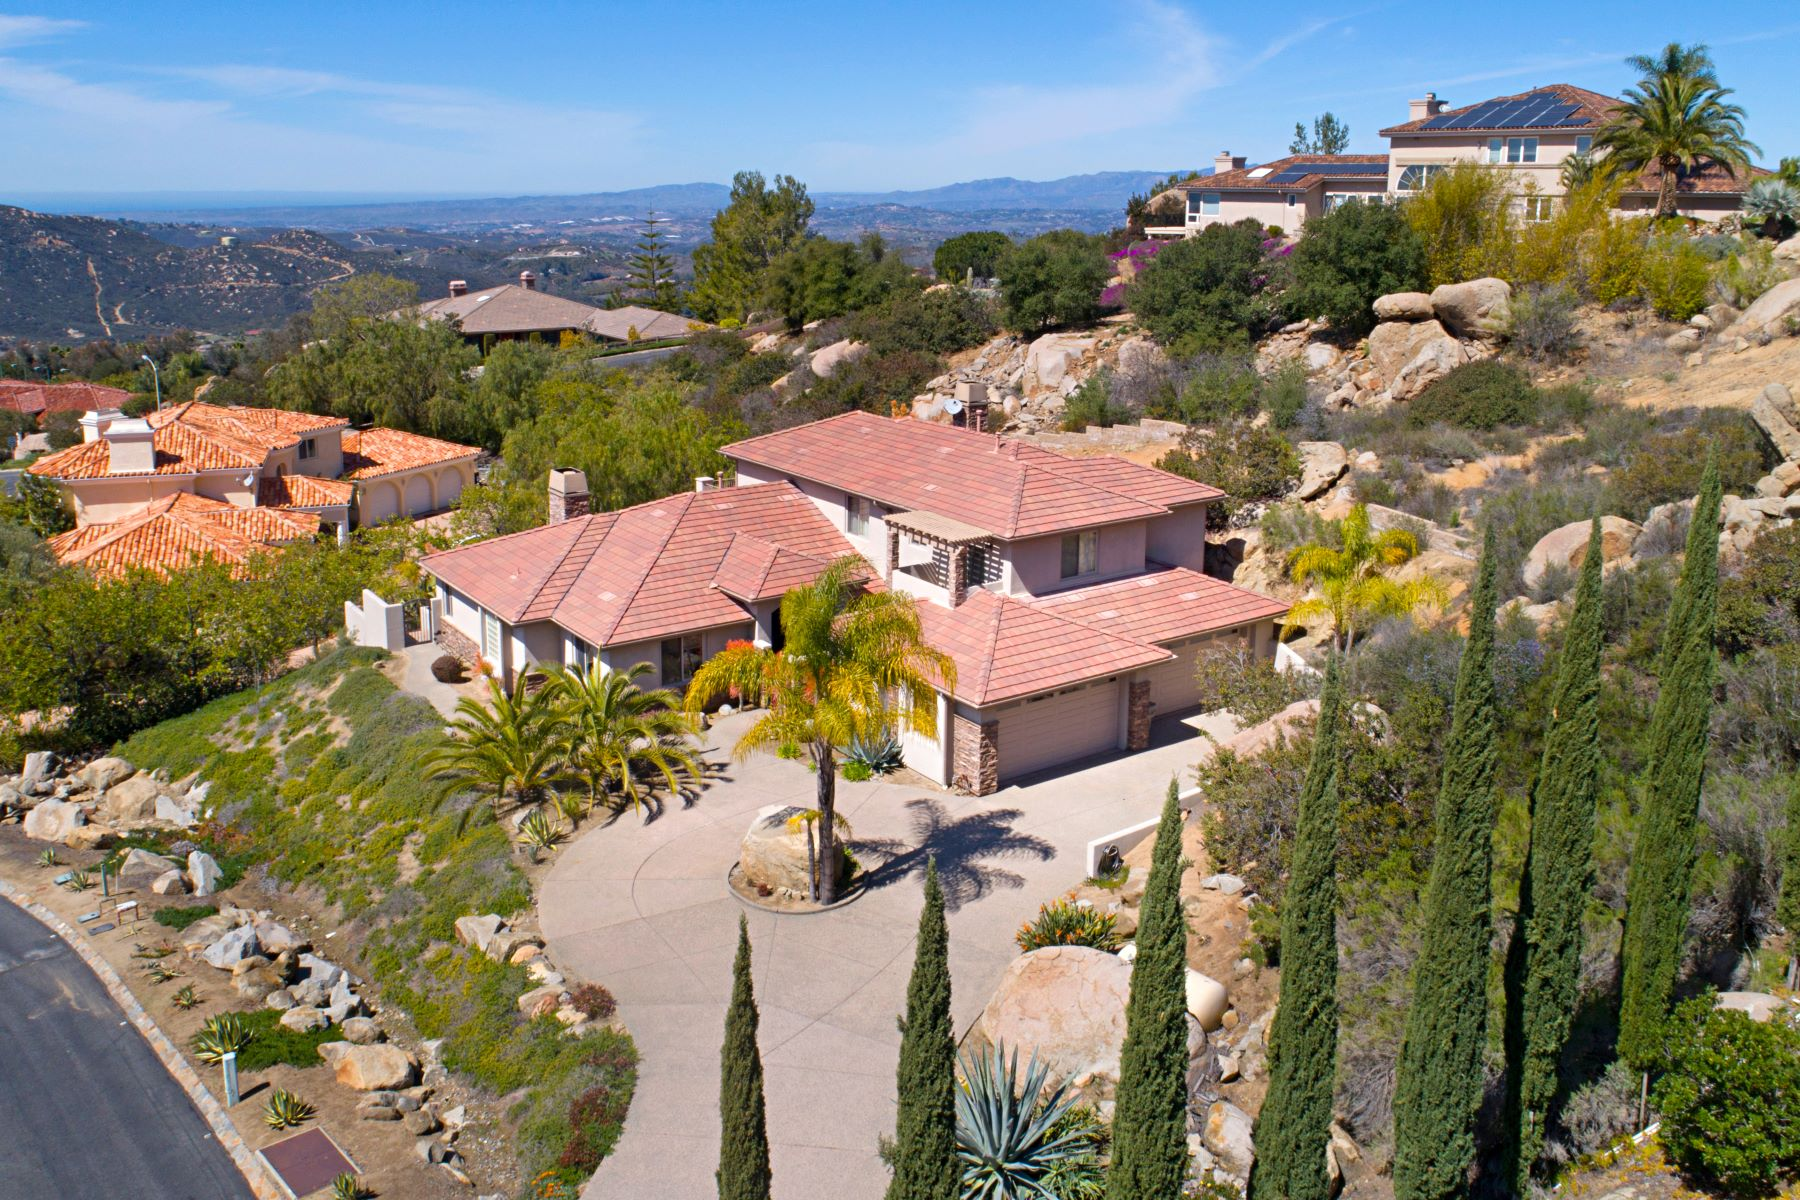 Single Family Home for Active at 9734 Little Canyon Ln 9734 Little Canyon Ln Escondido, California 92026 United States